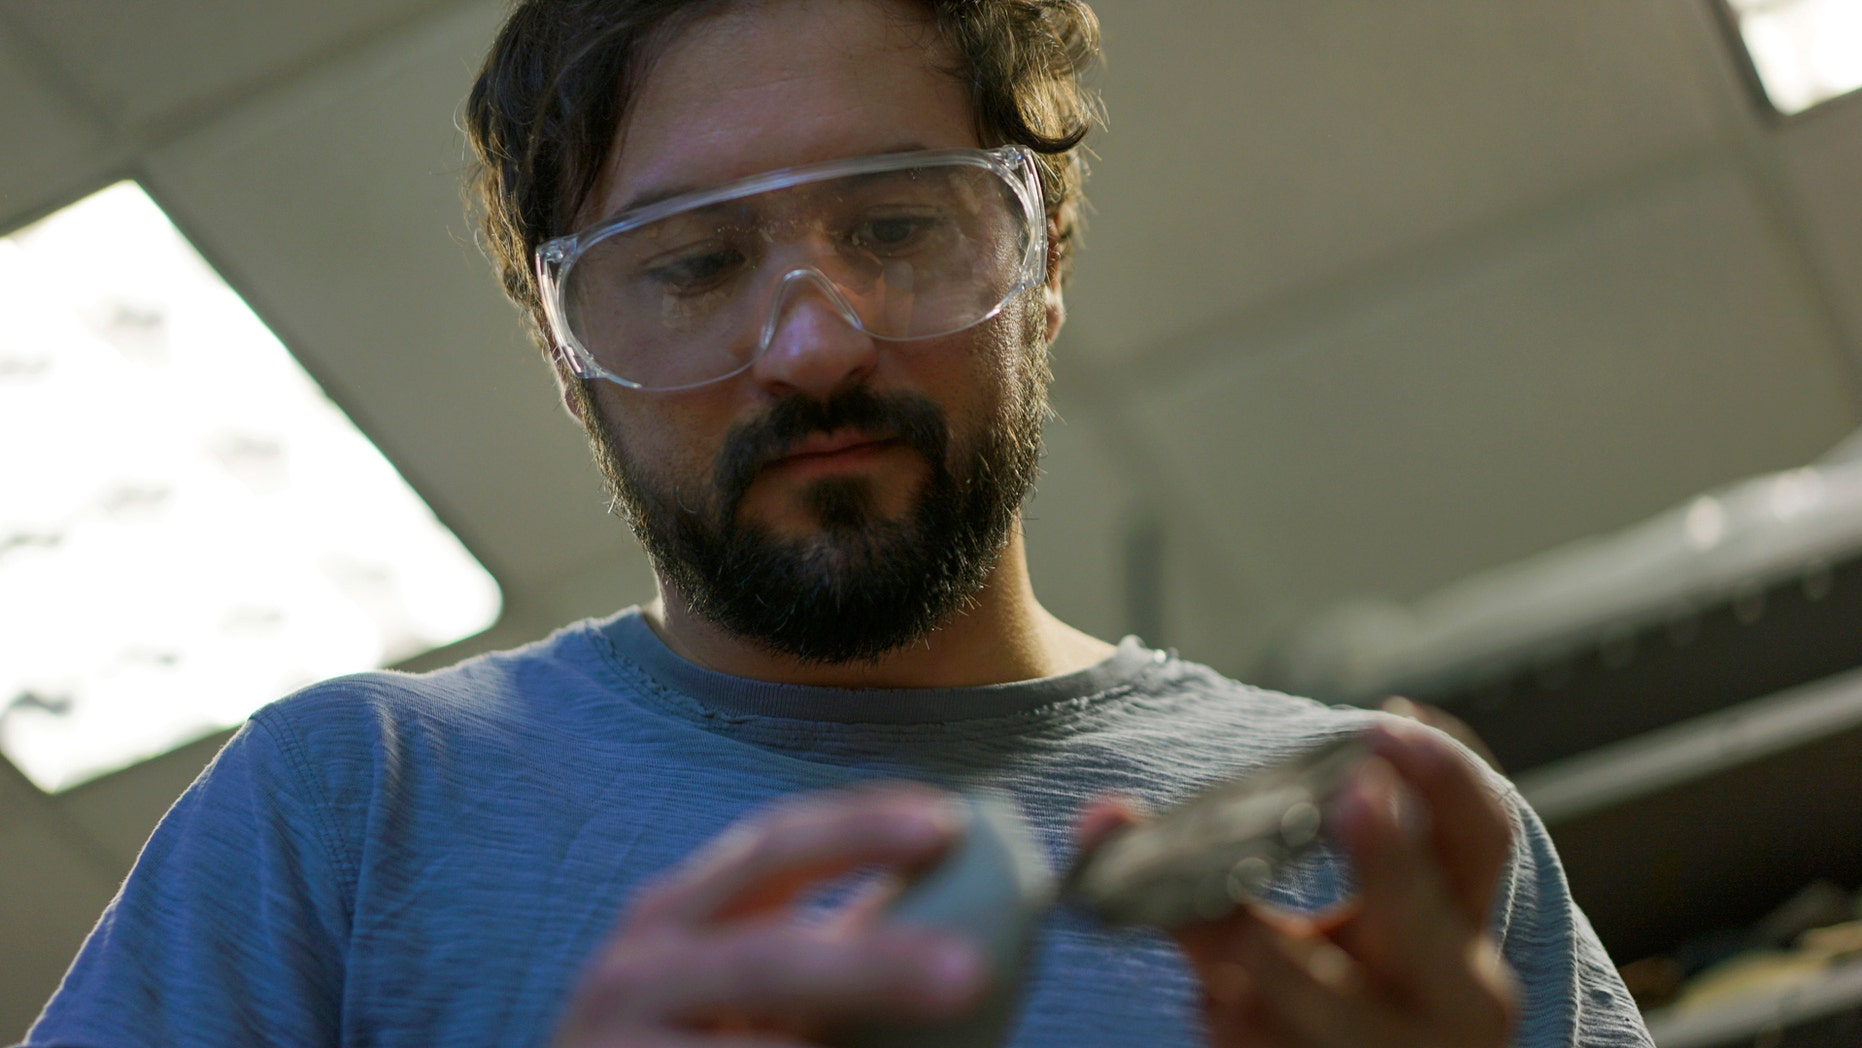 In this June 1, 2017, photo, Metin Eren, an archaeologist at Kent State University, looks at a newly chipped flake of obsidian in Kent, Ohio. Eren runs a newly-opened laboratory which makes replicas of ancient arrows, knives, and pottery to be shot, crushed, and smashed. It's allowing researchers to learn about engineering techniques of the first native Americans without destroying priceless genuine relics in the process. (AP Photo/Dake Kang)